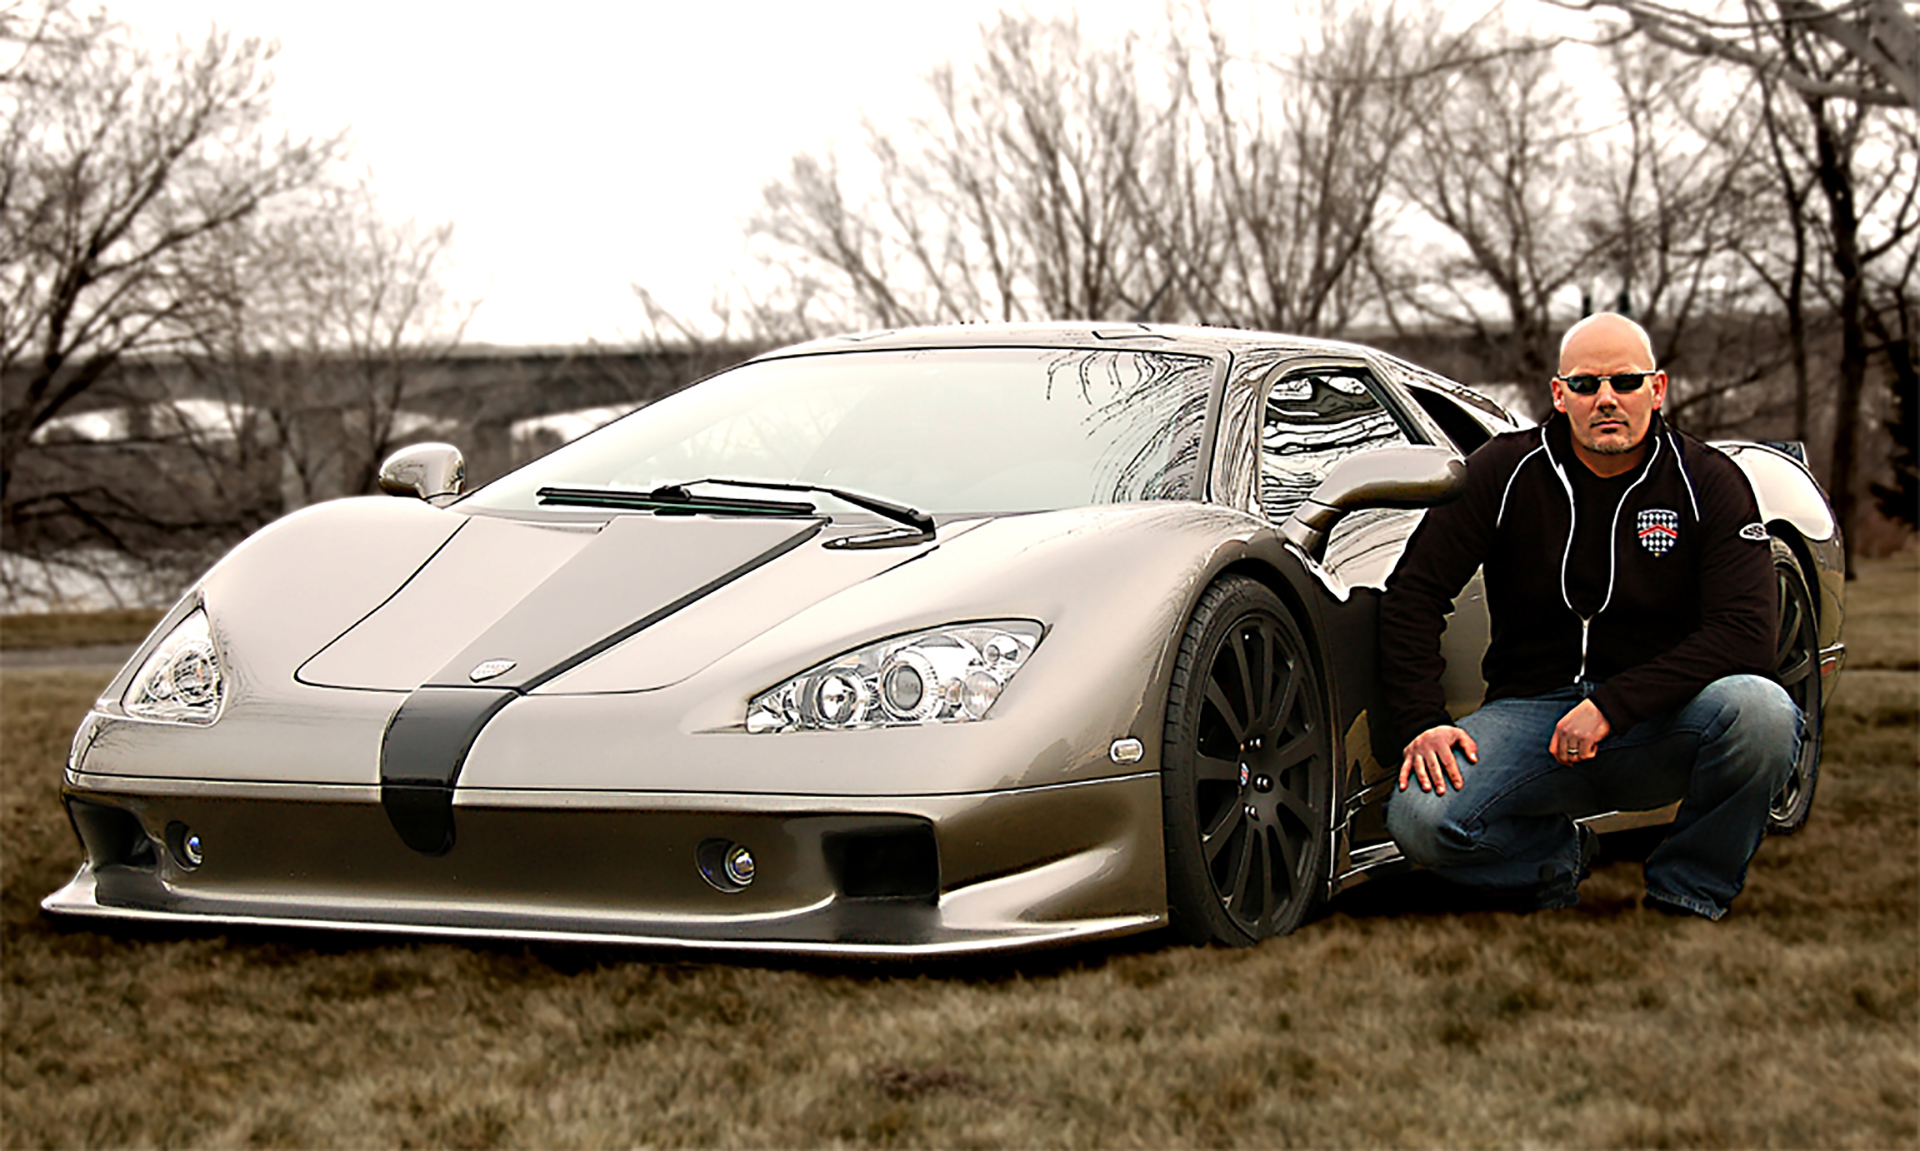 About SSC North America Ssc Ultimate Aero 2012